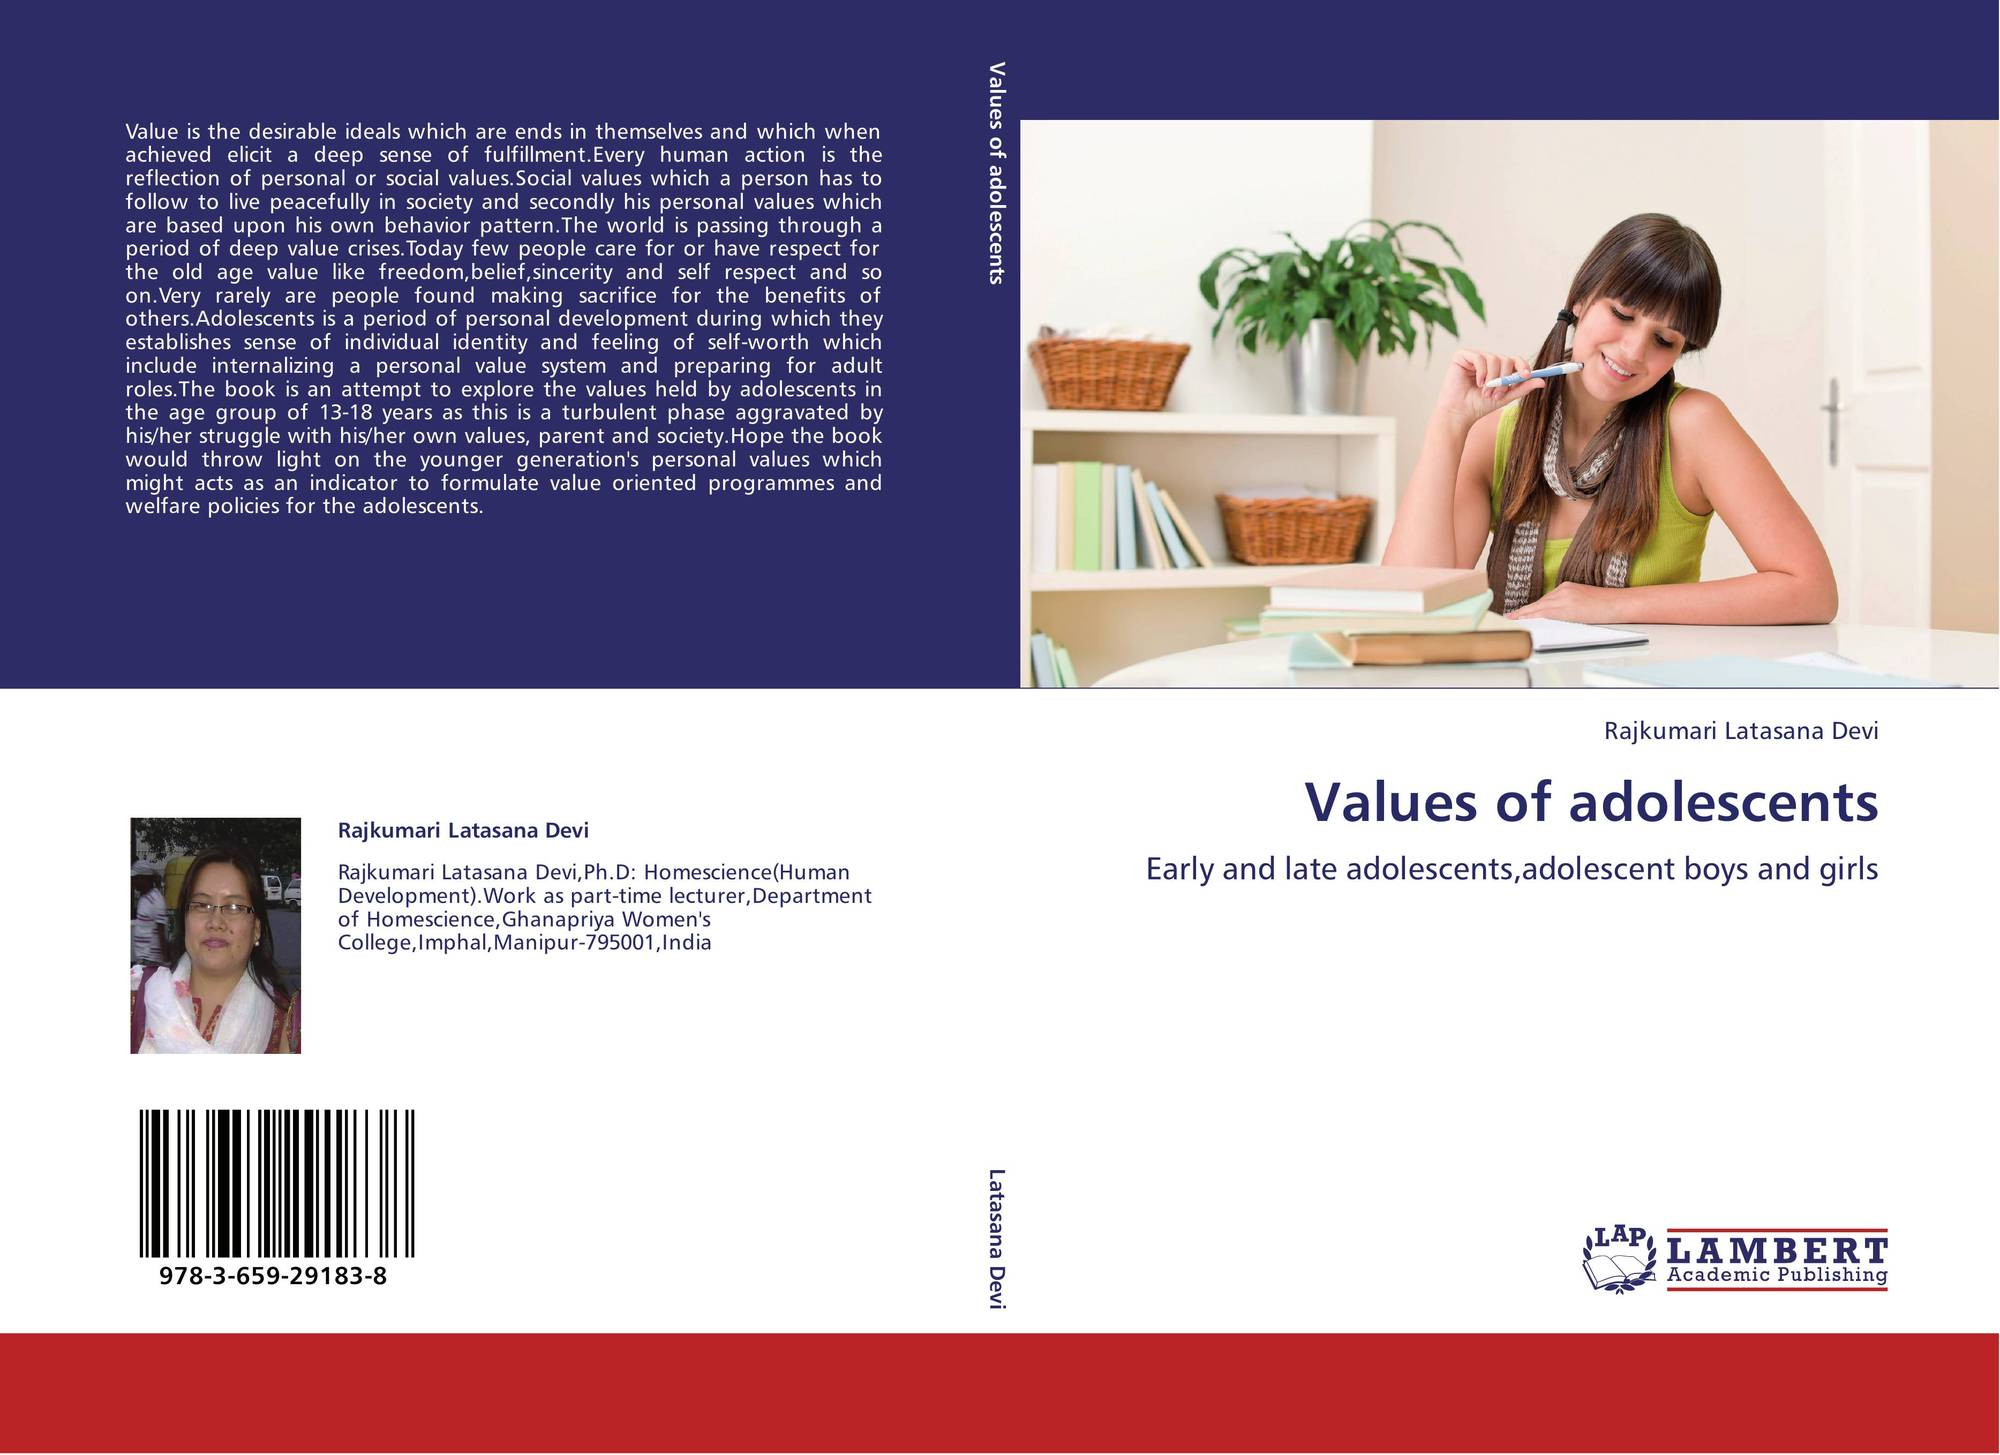 the adolescents search for self esteem and the role of professors in the search On the nature of parenting parenting is both a biological and a social process (lerner, castellino, terry, villarruel &mckinney, 1995 tobach & schneirla, 1968)parenting is the term summarizing the set of behaviors involved across life in the relations among organisms who are usually conspecifics, and typically members of different generations or, at the least, of different birth cohorts.